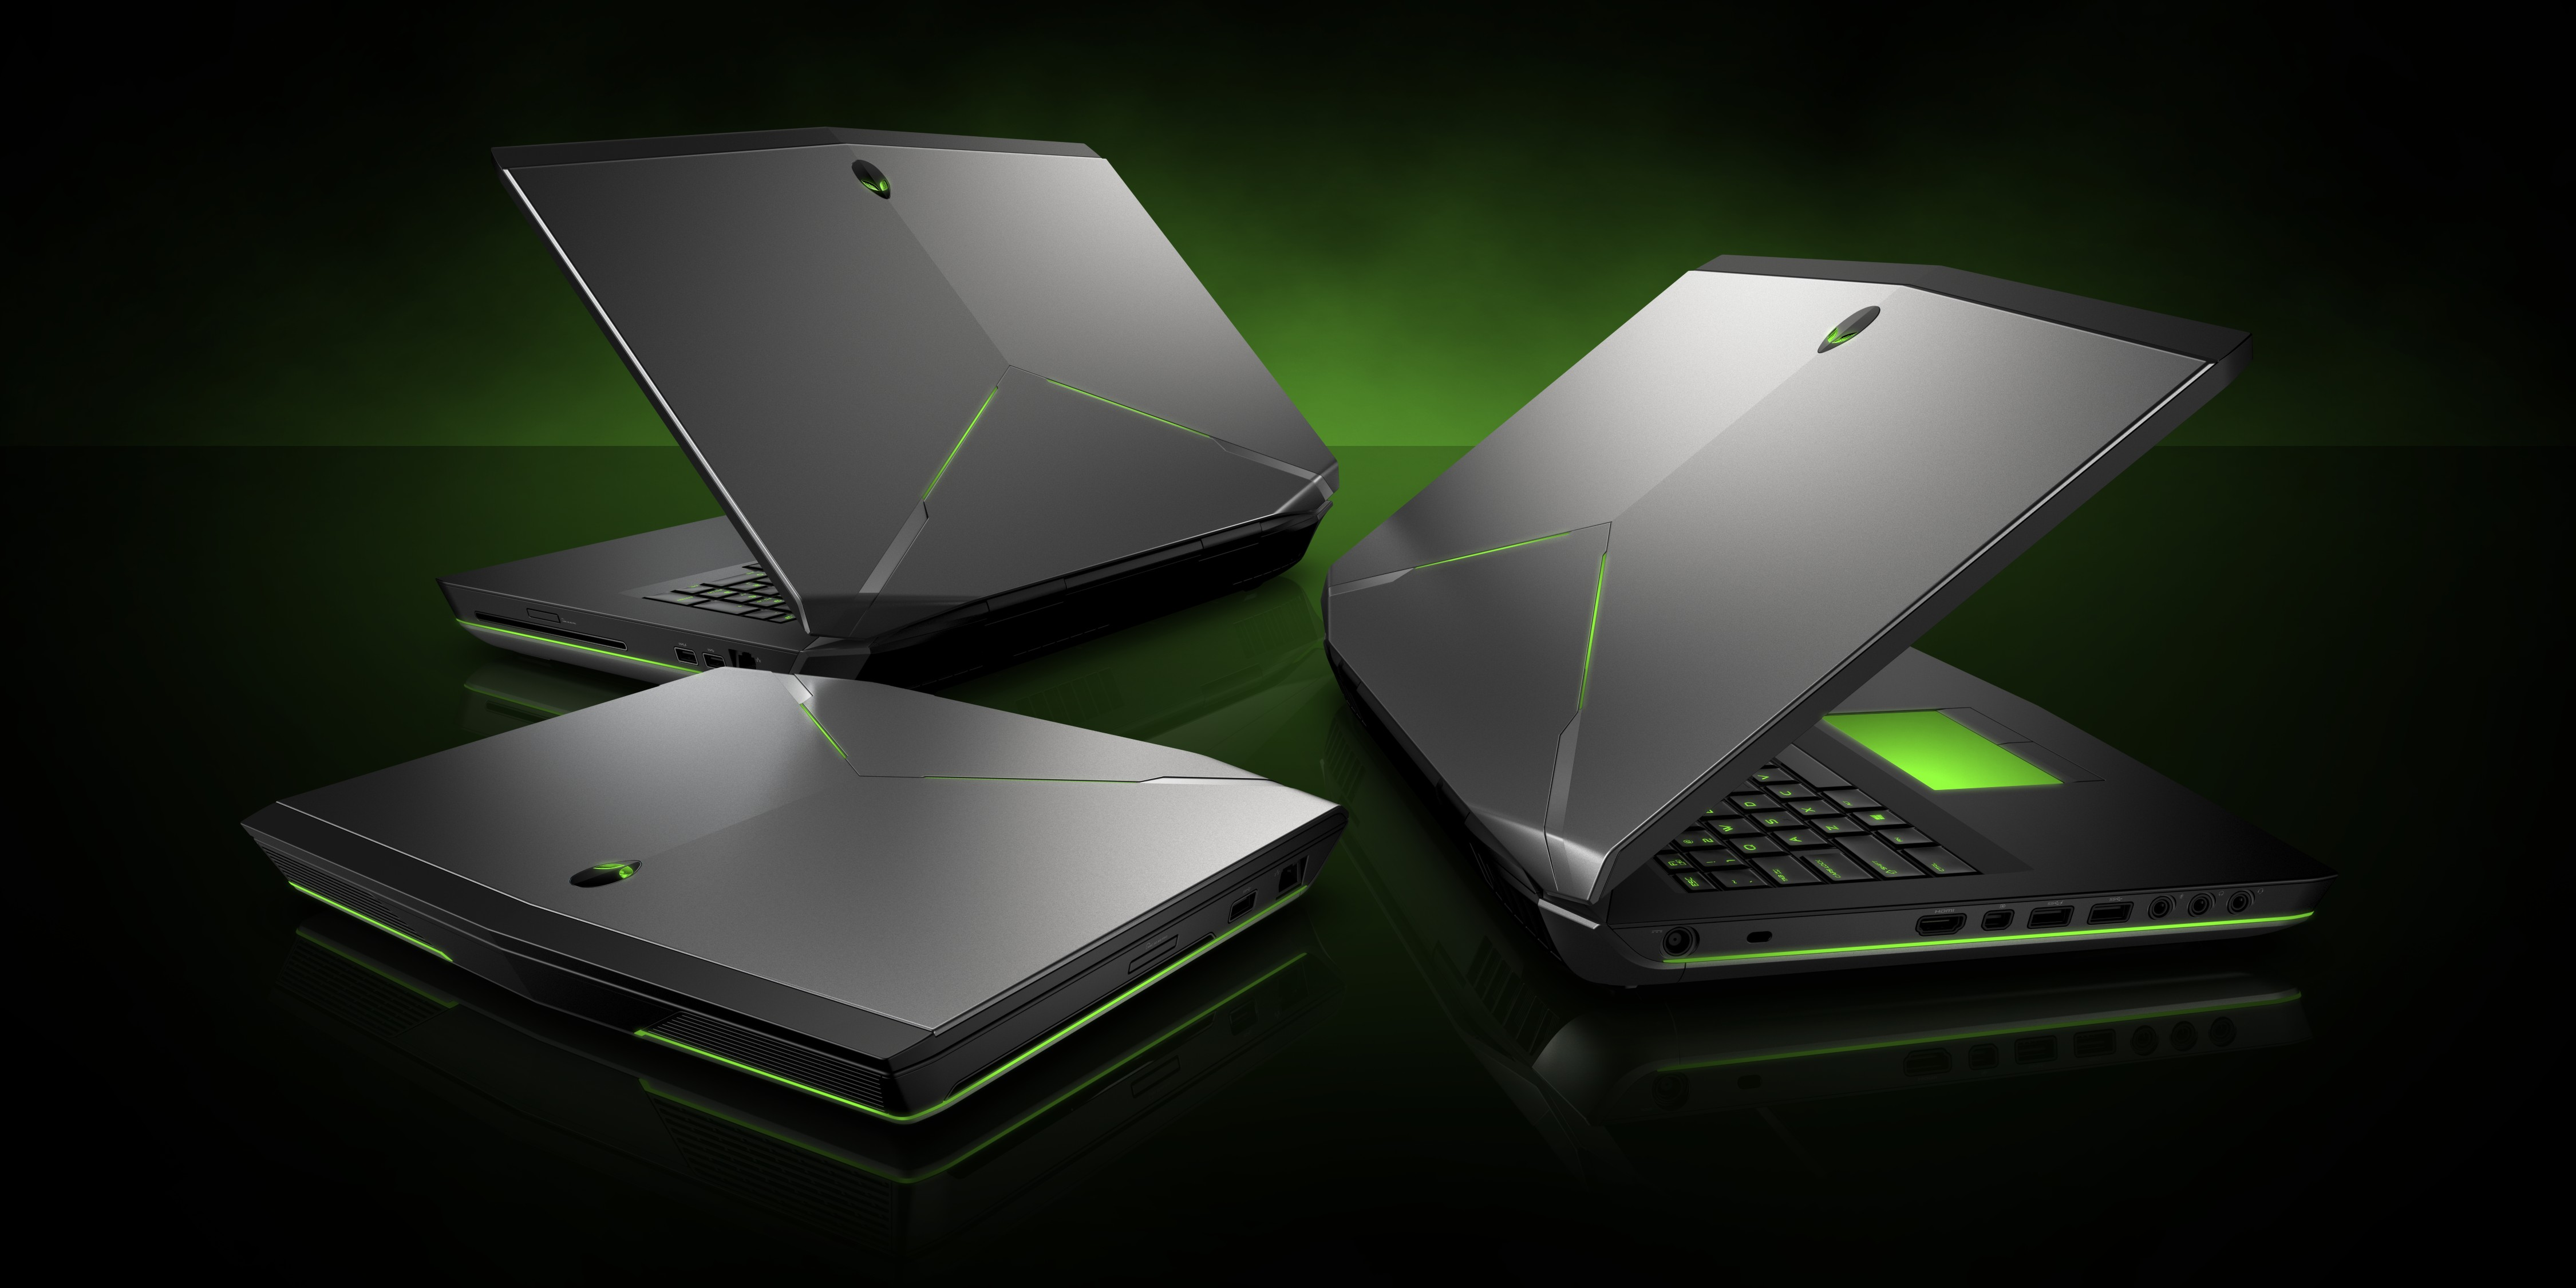 Alienware unveils three powerful gaming laptops